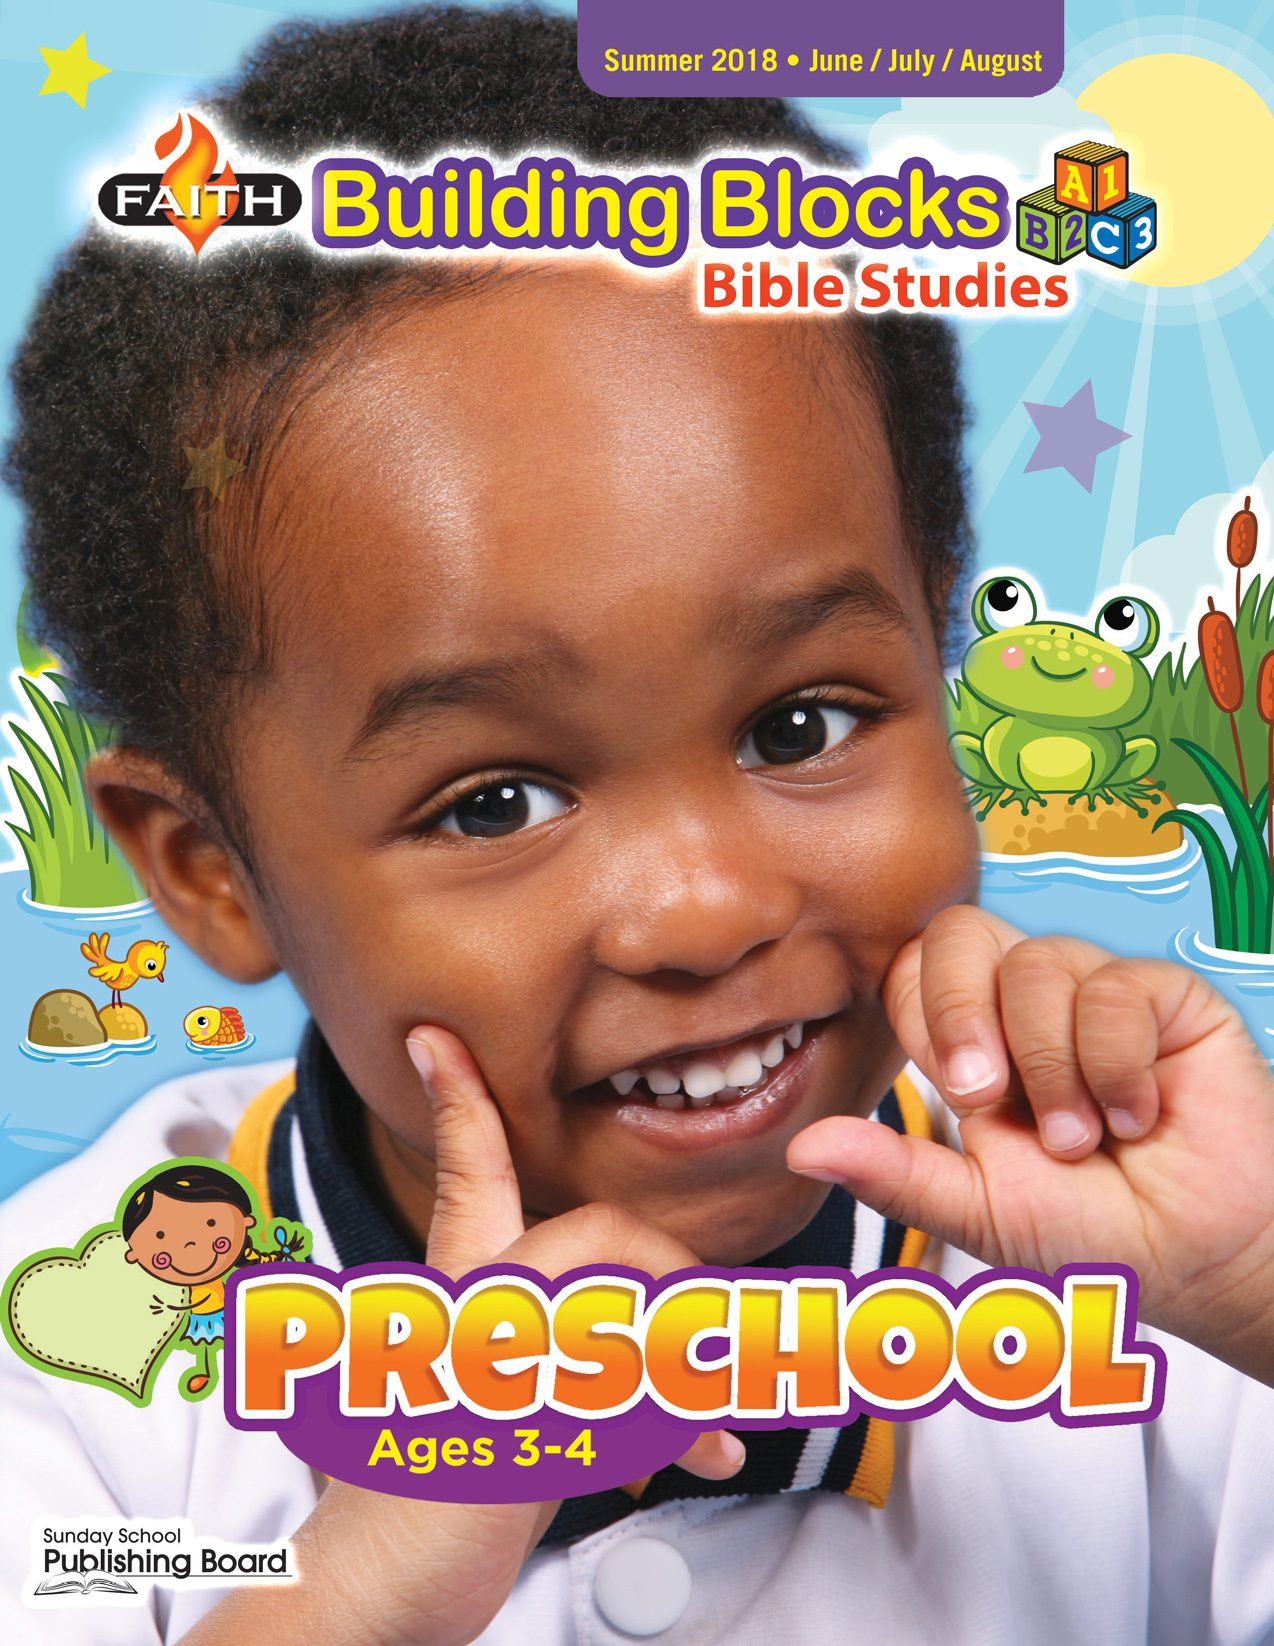 Faith Building Blocks Bible Studies, Preschool for Ages 3-4 (Summer 2018)-Digital Edition